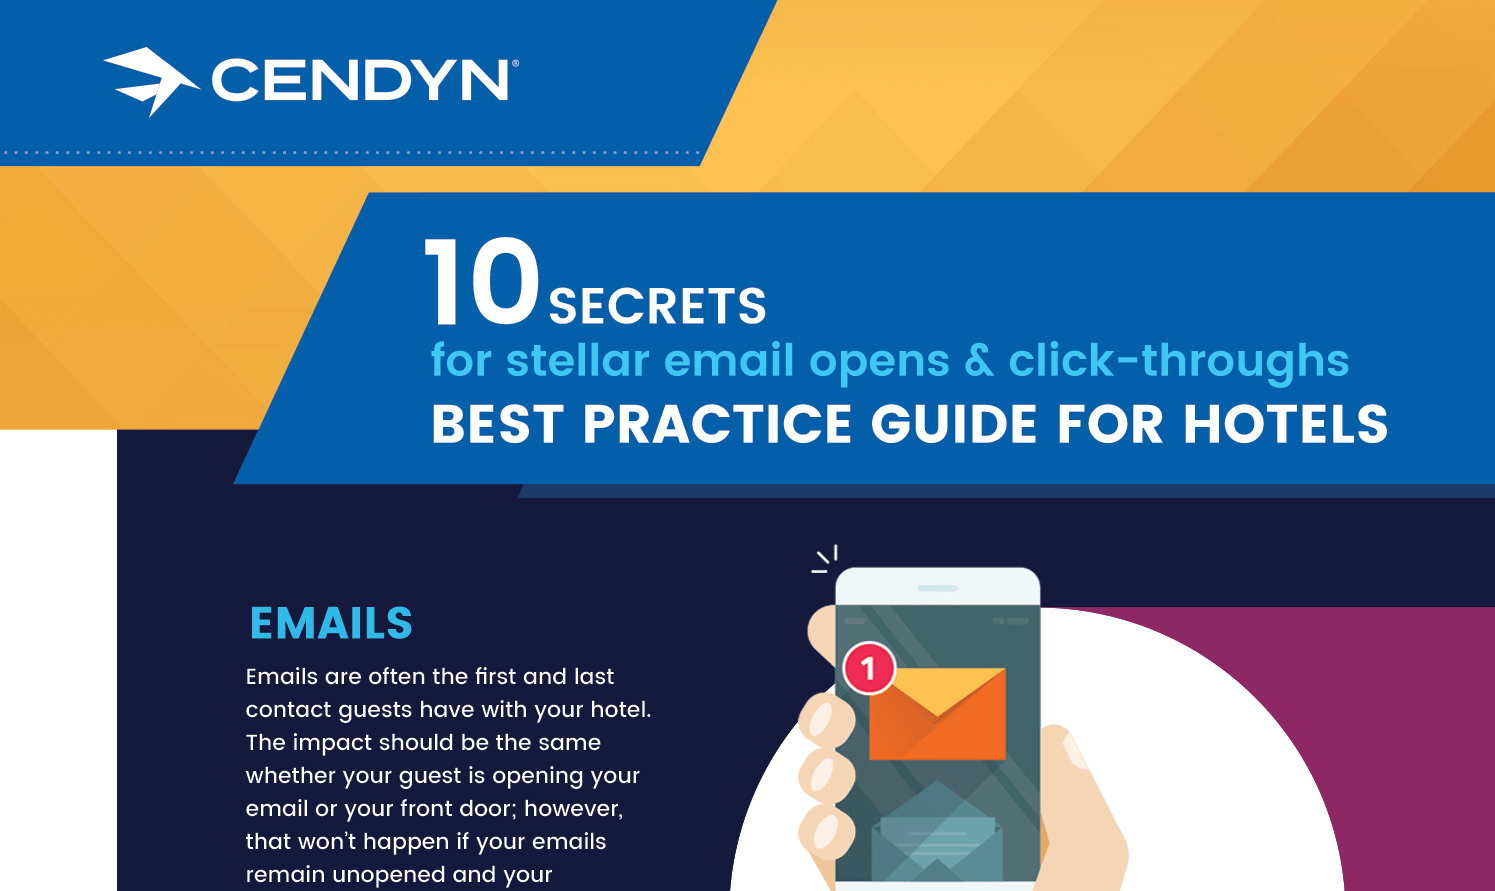 secrets for email opens